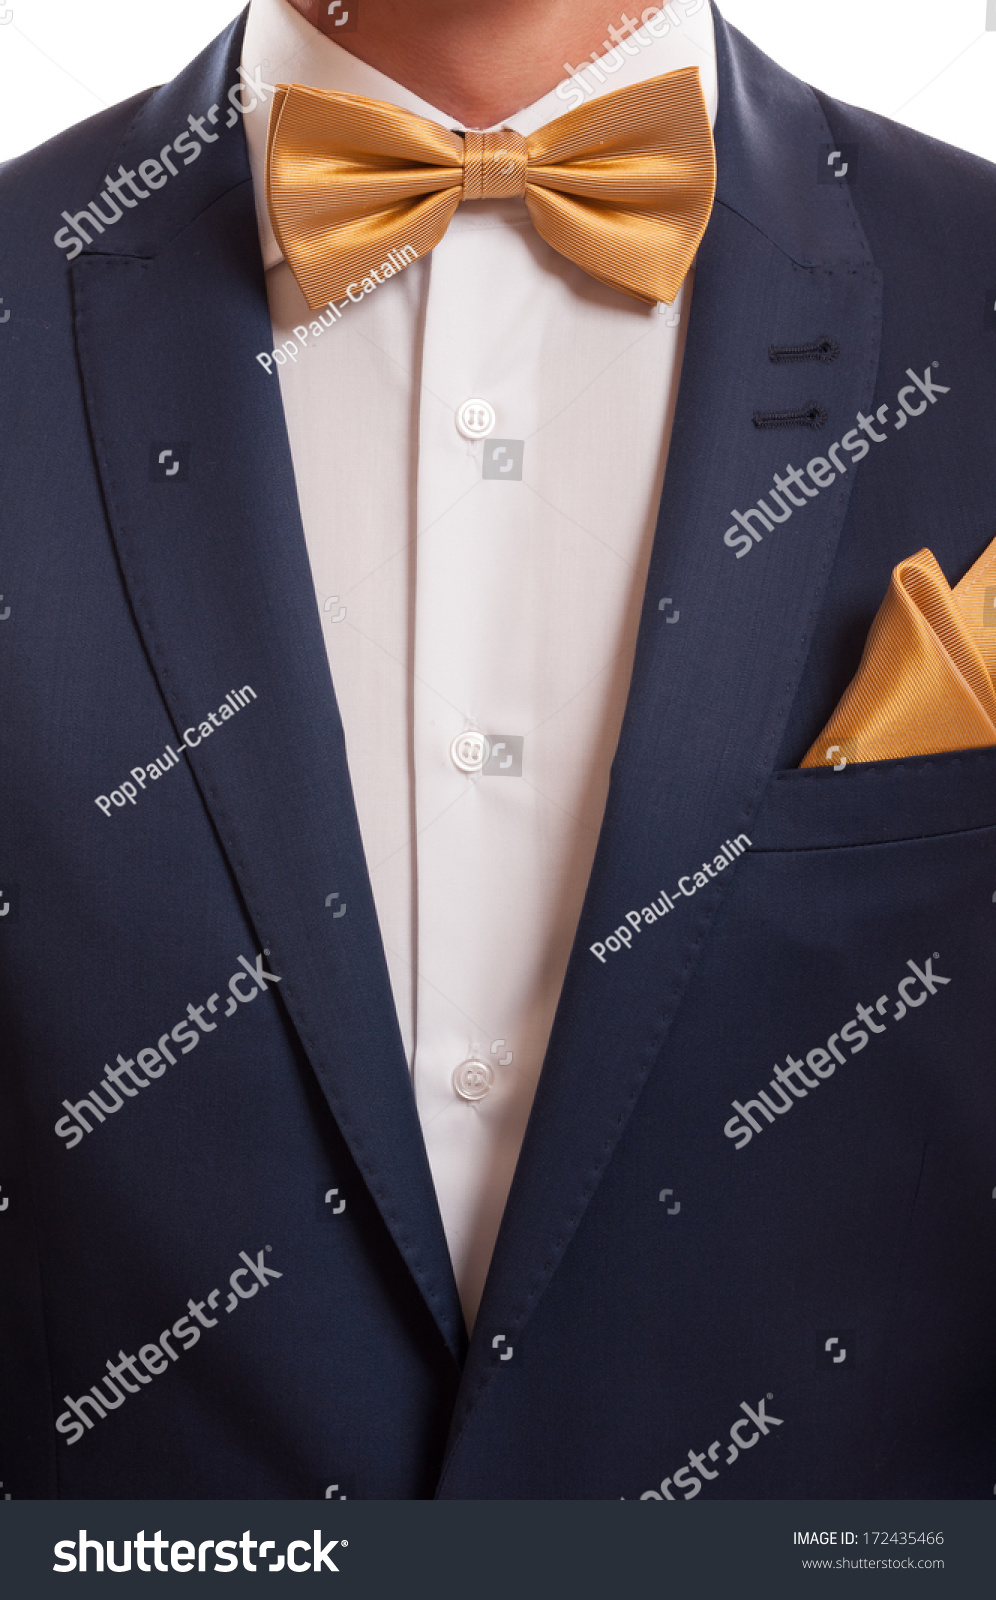 How to Fold a Handkerchief Handkerchiefs, aka pocket squares, are a perfect accent accessory for a wide range of looks and dress codes. They are perfect accent pieces for formal black tie attire as much as a more dressed down look consisting of patterned dress shirt and casual sport coat.